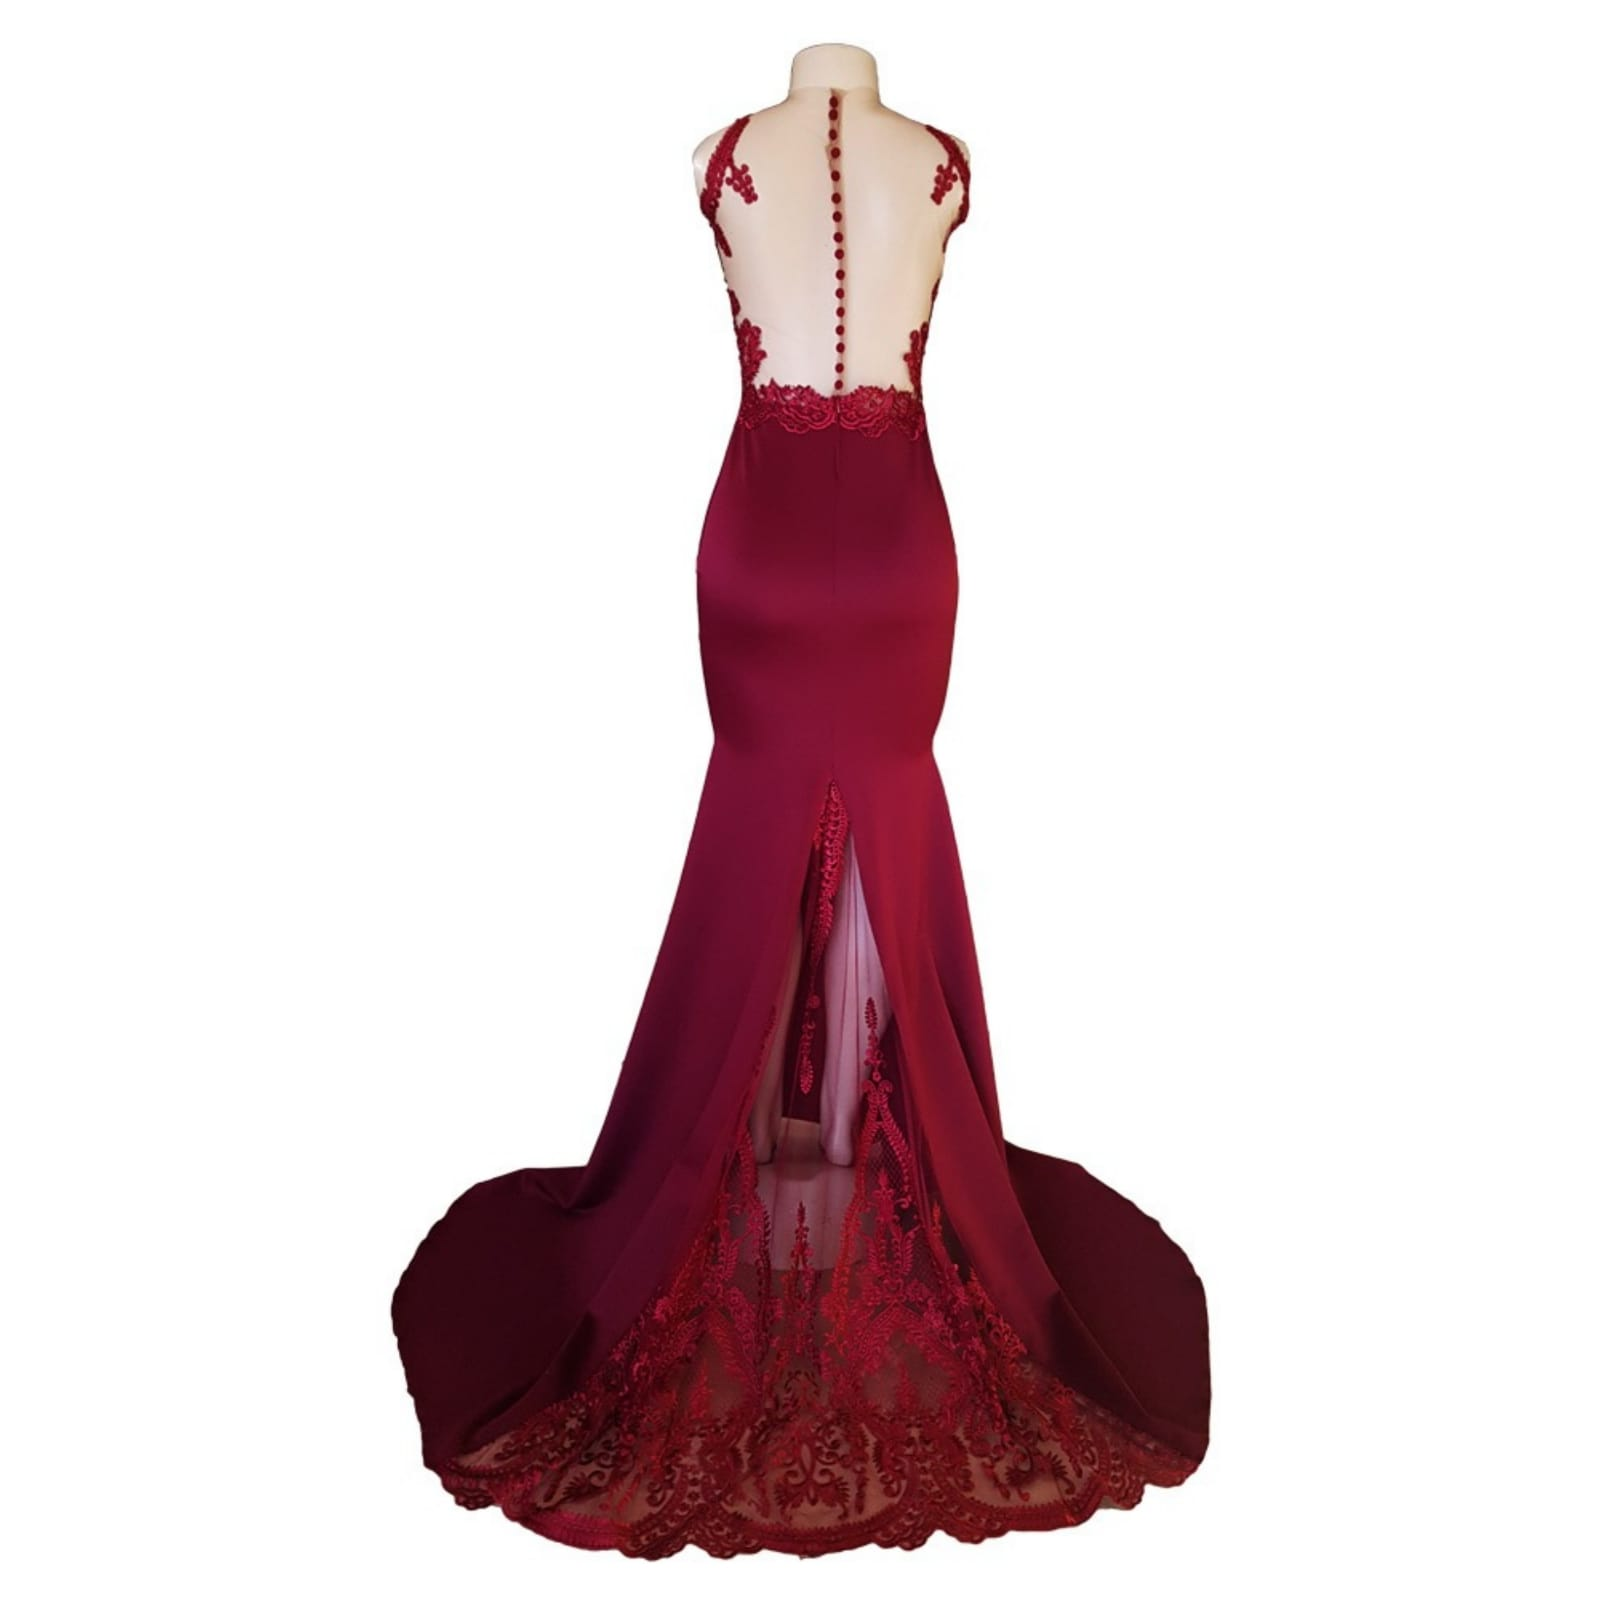 Maroon soft mermaid matric dance dress 10 maroon soft mermaid matric dance dress created to make celine look glorious in her special night. With a sheer lace train that hooks up on the side, a naked illusion back with button and lace detail adding a touch of sensuality and elegance to her look.